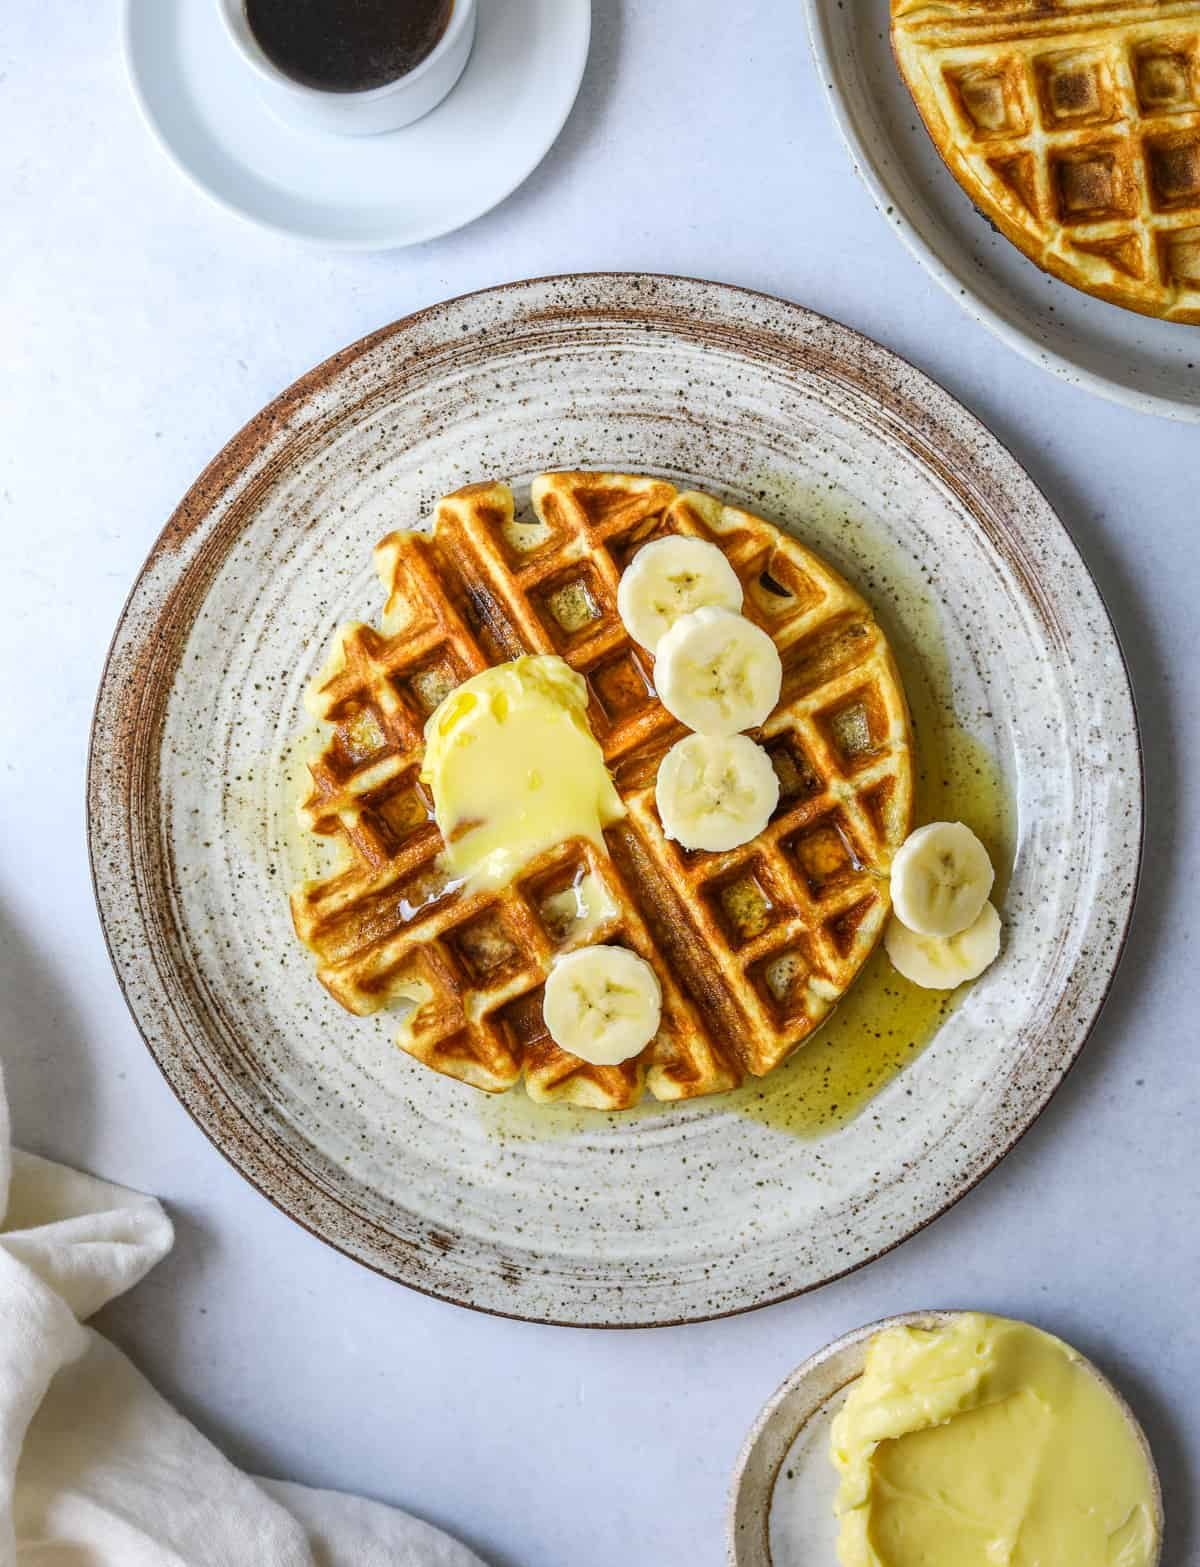 a ceramic plate with a waffle topped with banana slices, a cup of coffee and a dish of butter